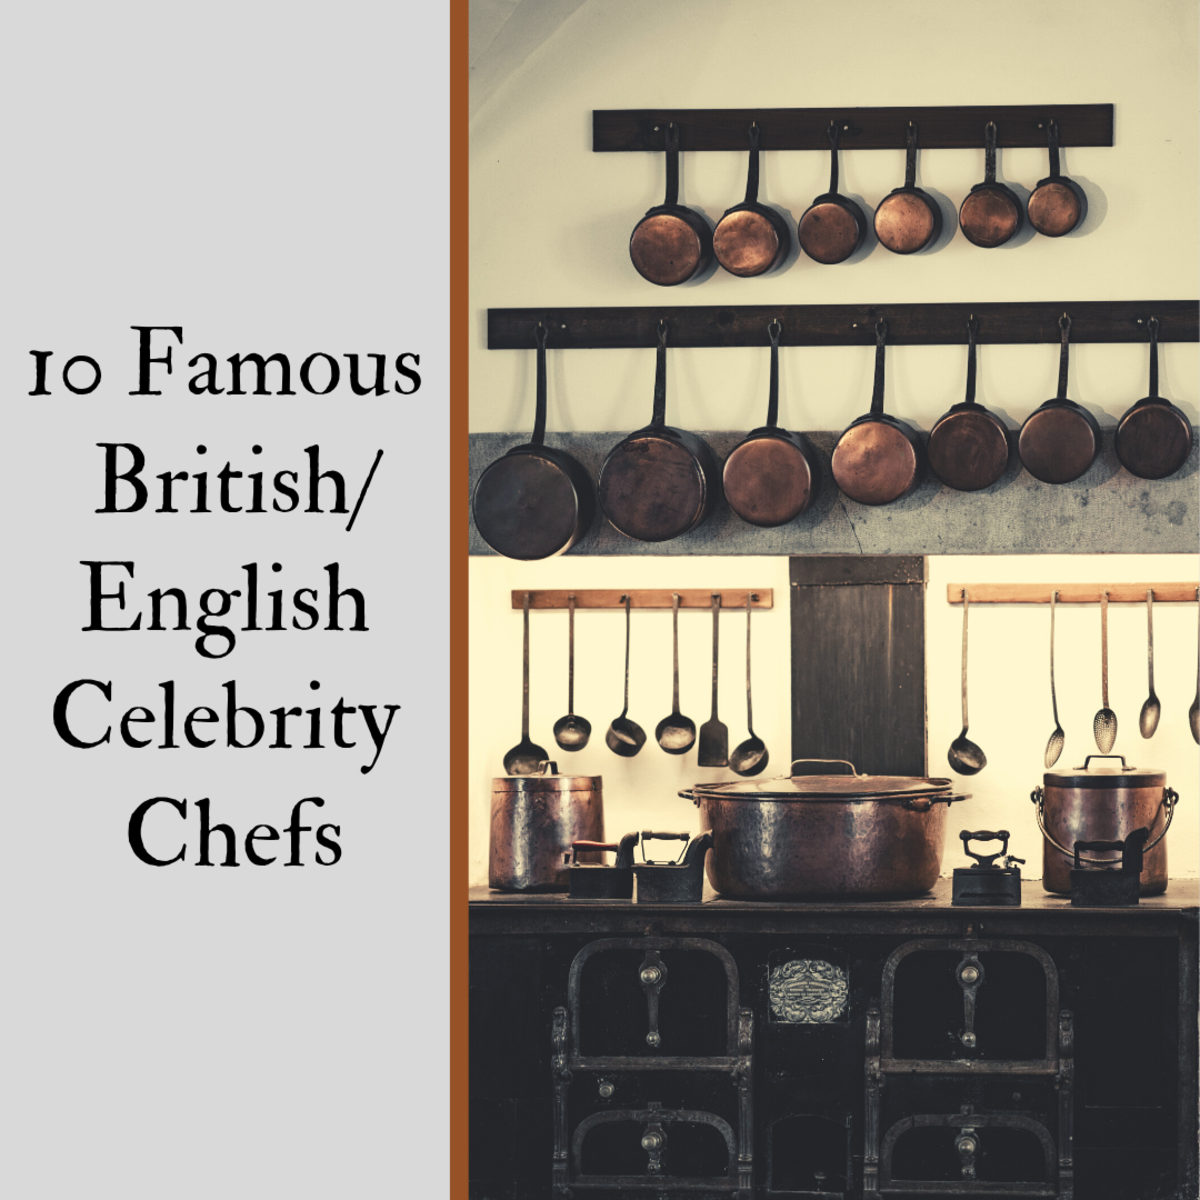 The Top 10 Famous British/English Celebrity Chefs